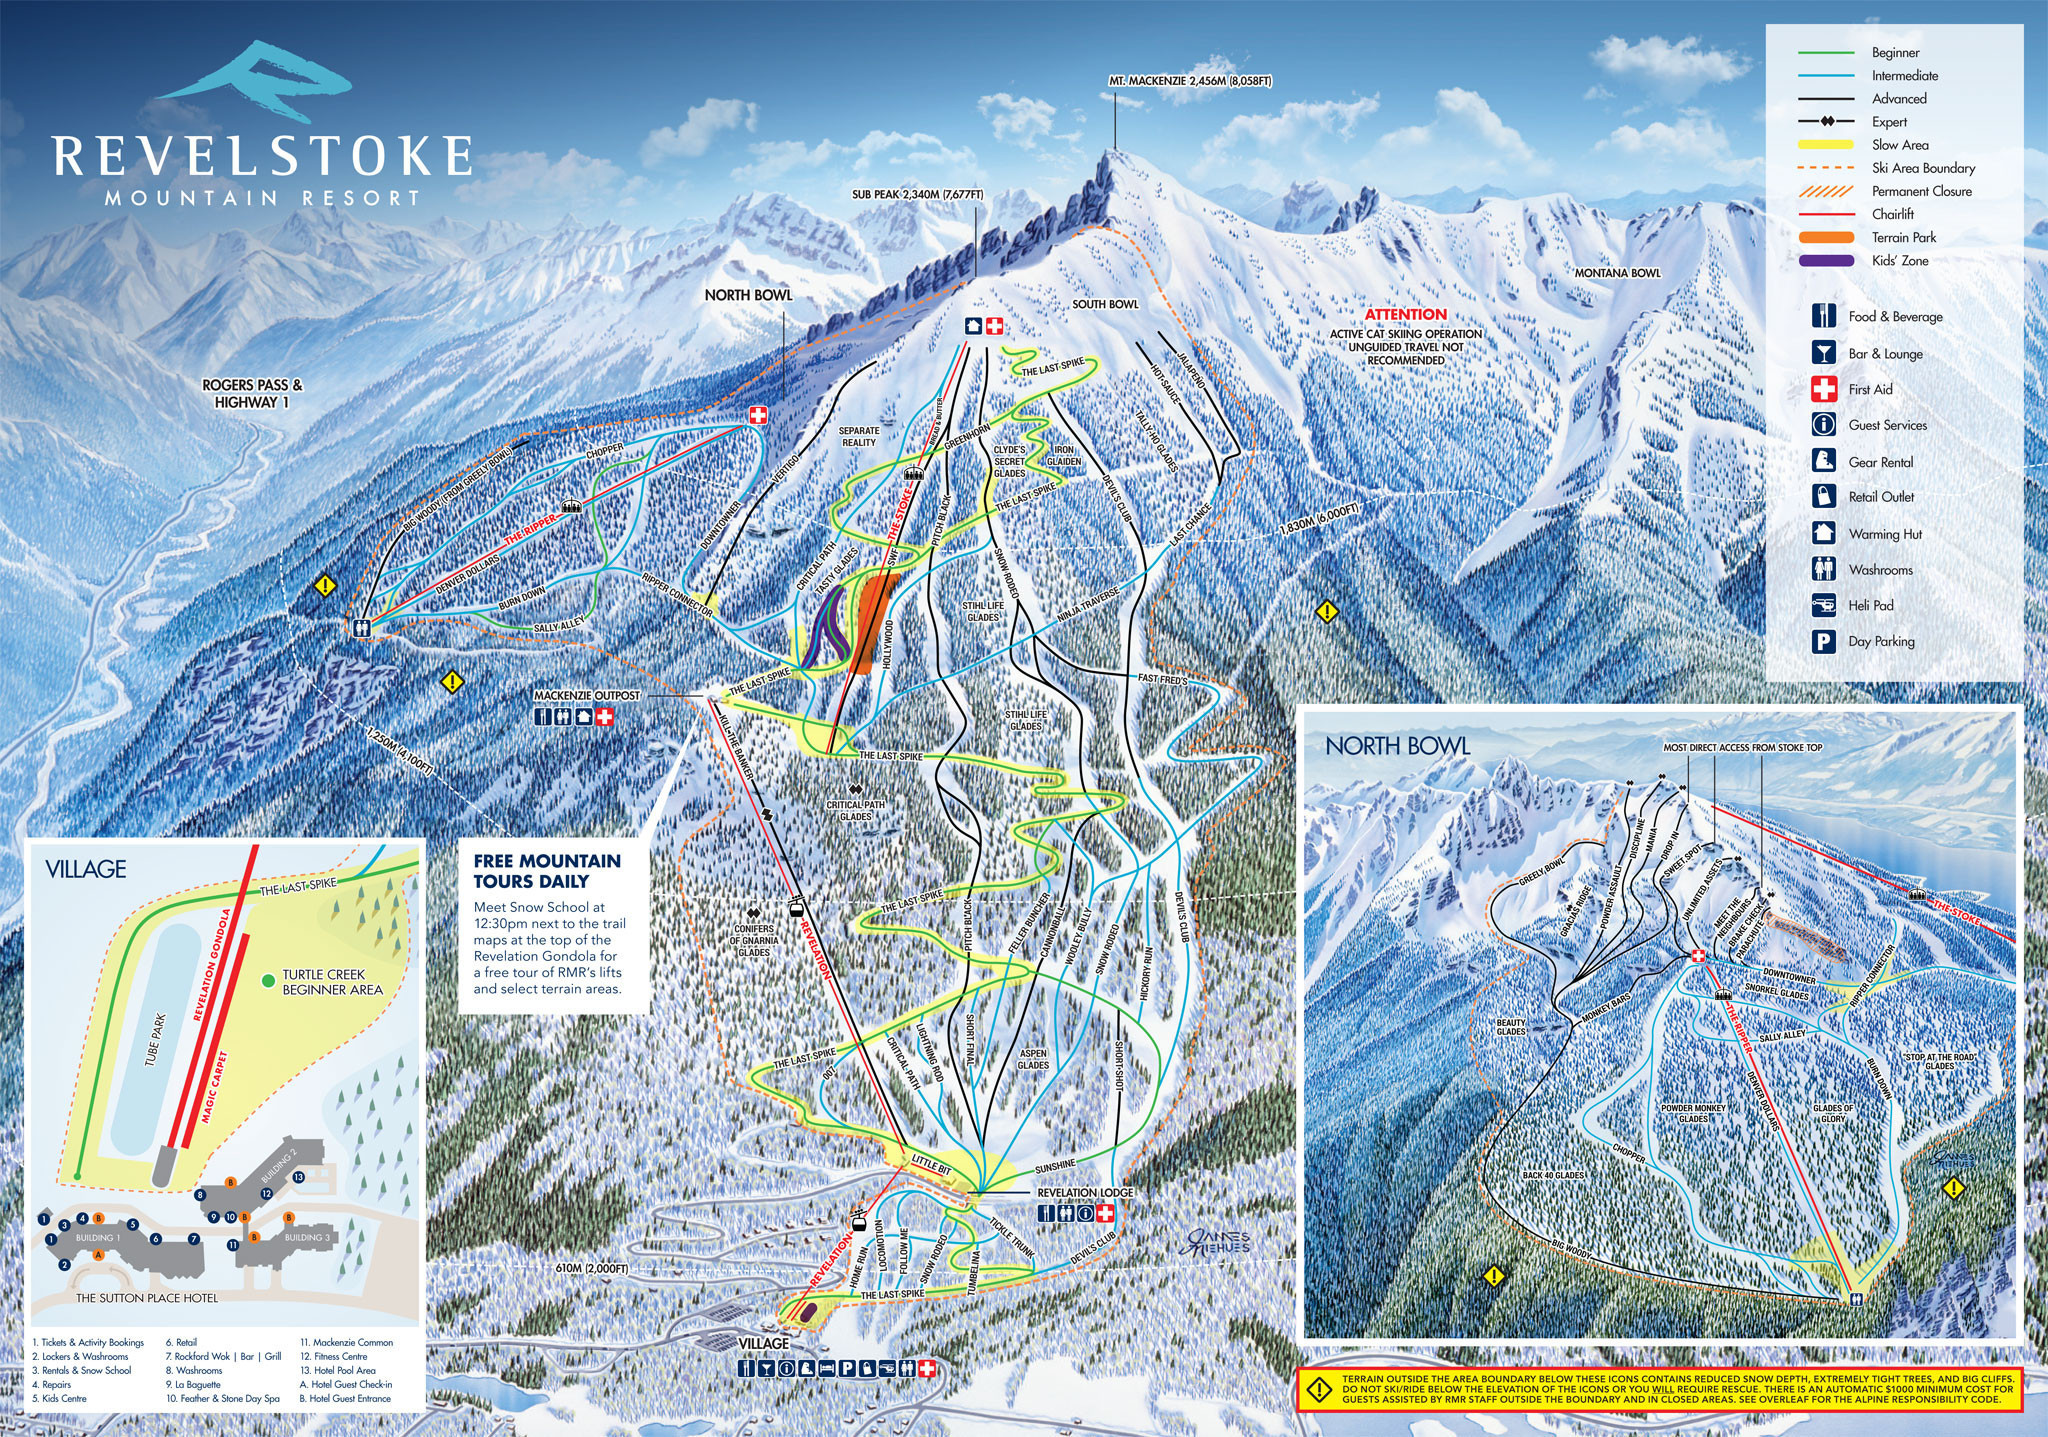 Pistenplan von Revelstoke Mountain Resort